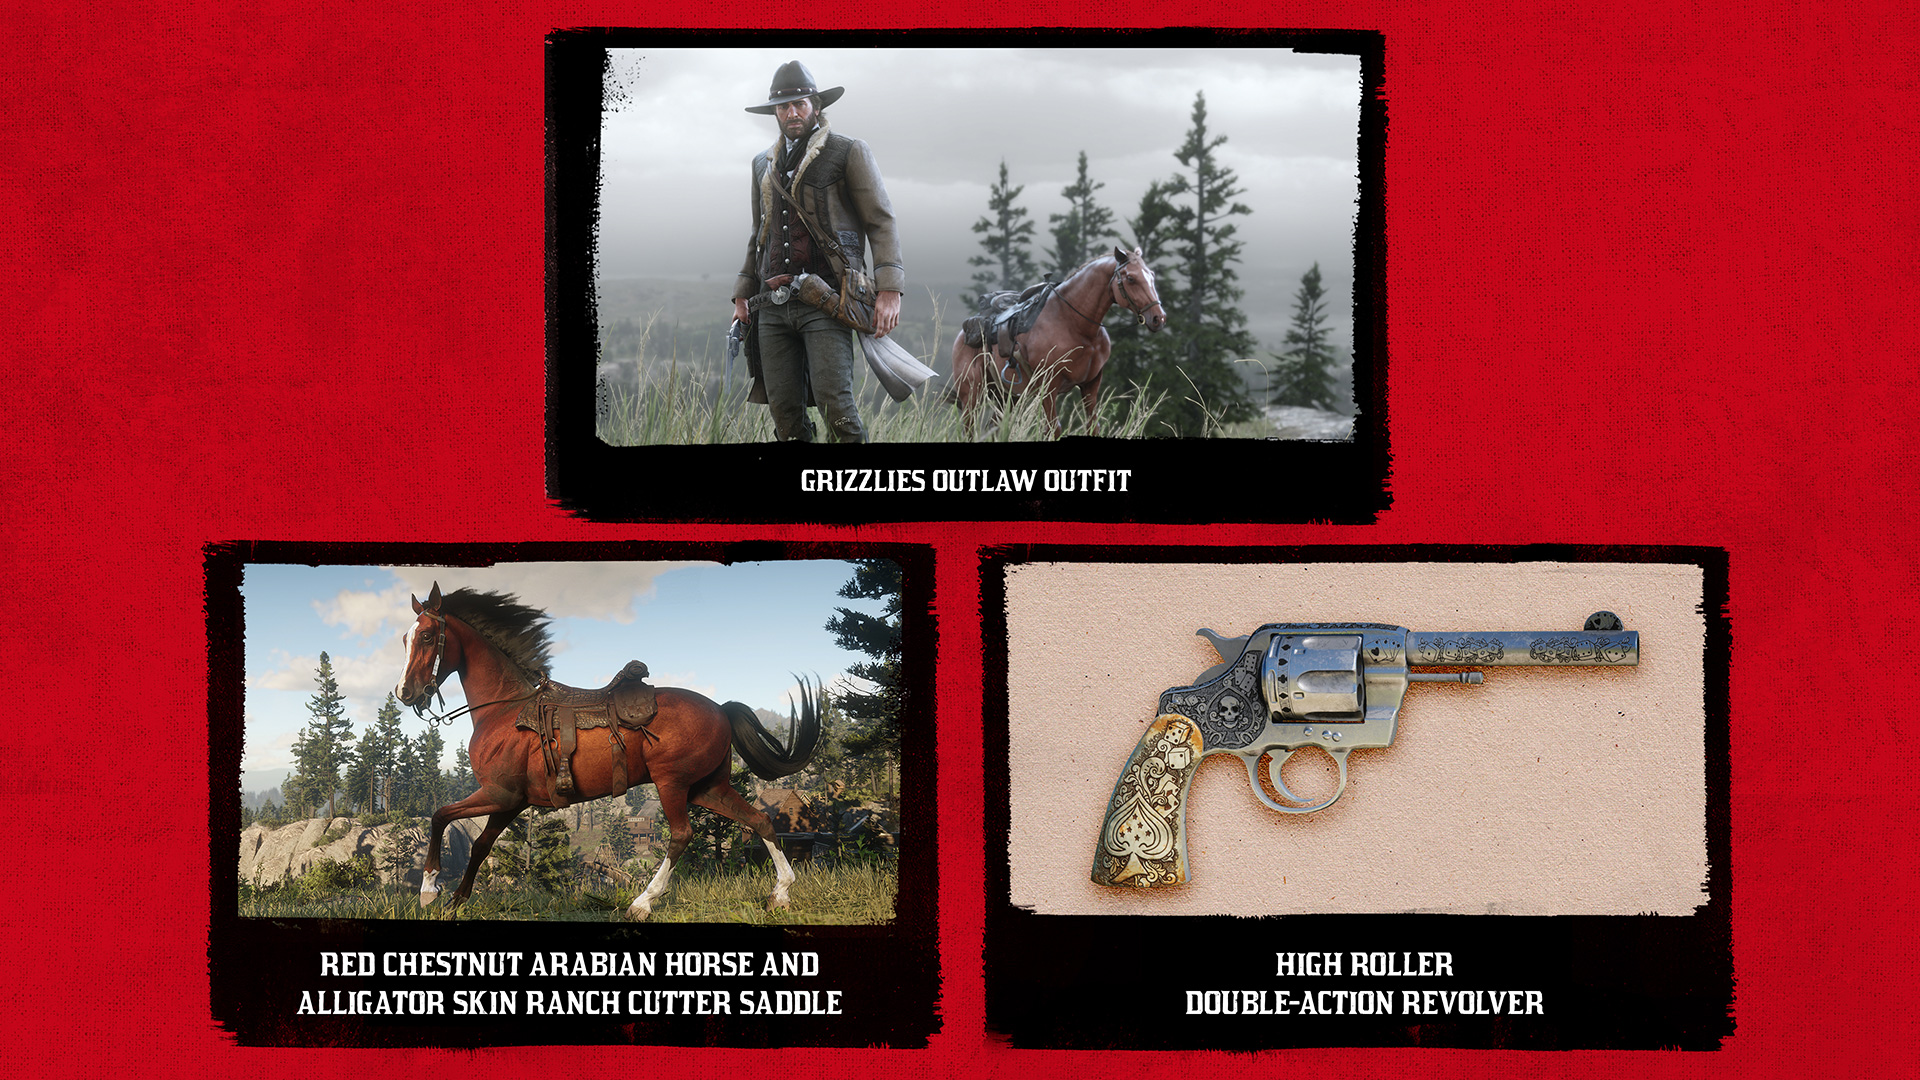 The PS4 exclusive content for Red Dead Redemption 2